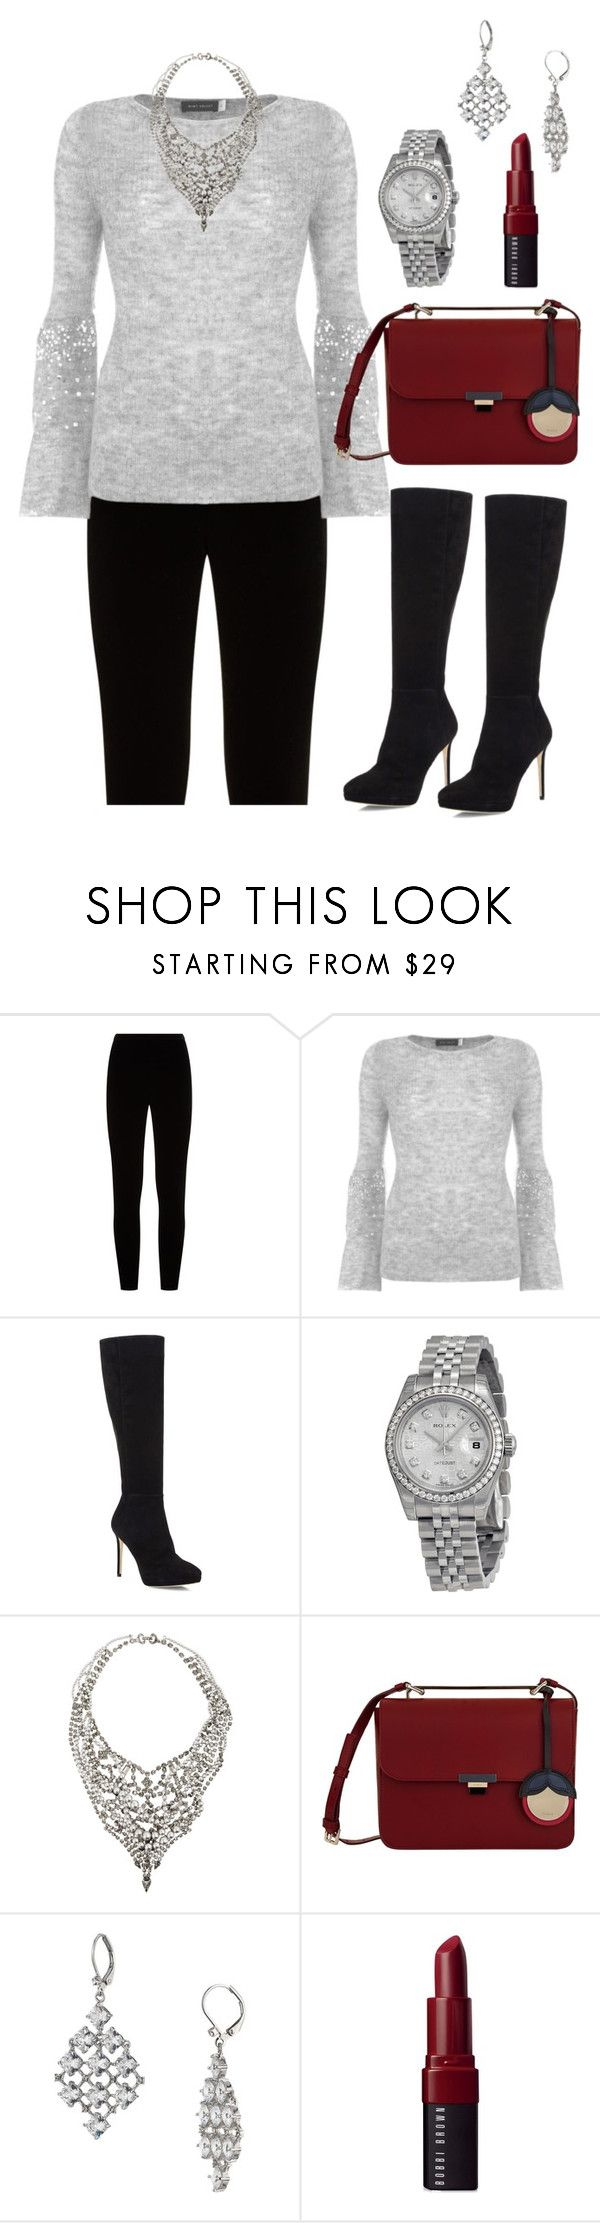 """""""Christmas Eve 2017 Look"""" by sonyastyle ❤ liked on Polyvore featuring Eileen Fisher, Mint Velvet, Jimmy Choo, Rolex, Tom Binns, Furla, Carolee, Bobbi Brown Cosmetics, Christmas and polyvoreeditorial"""